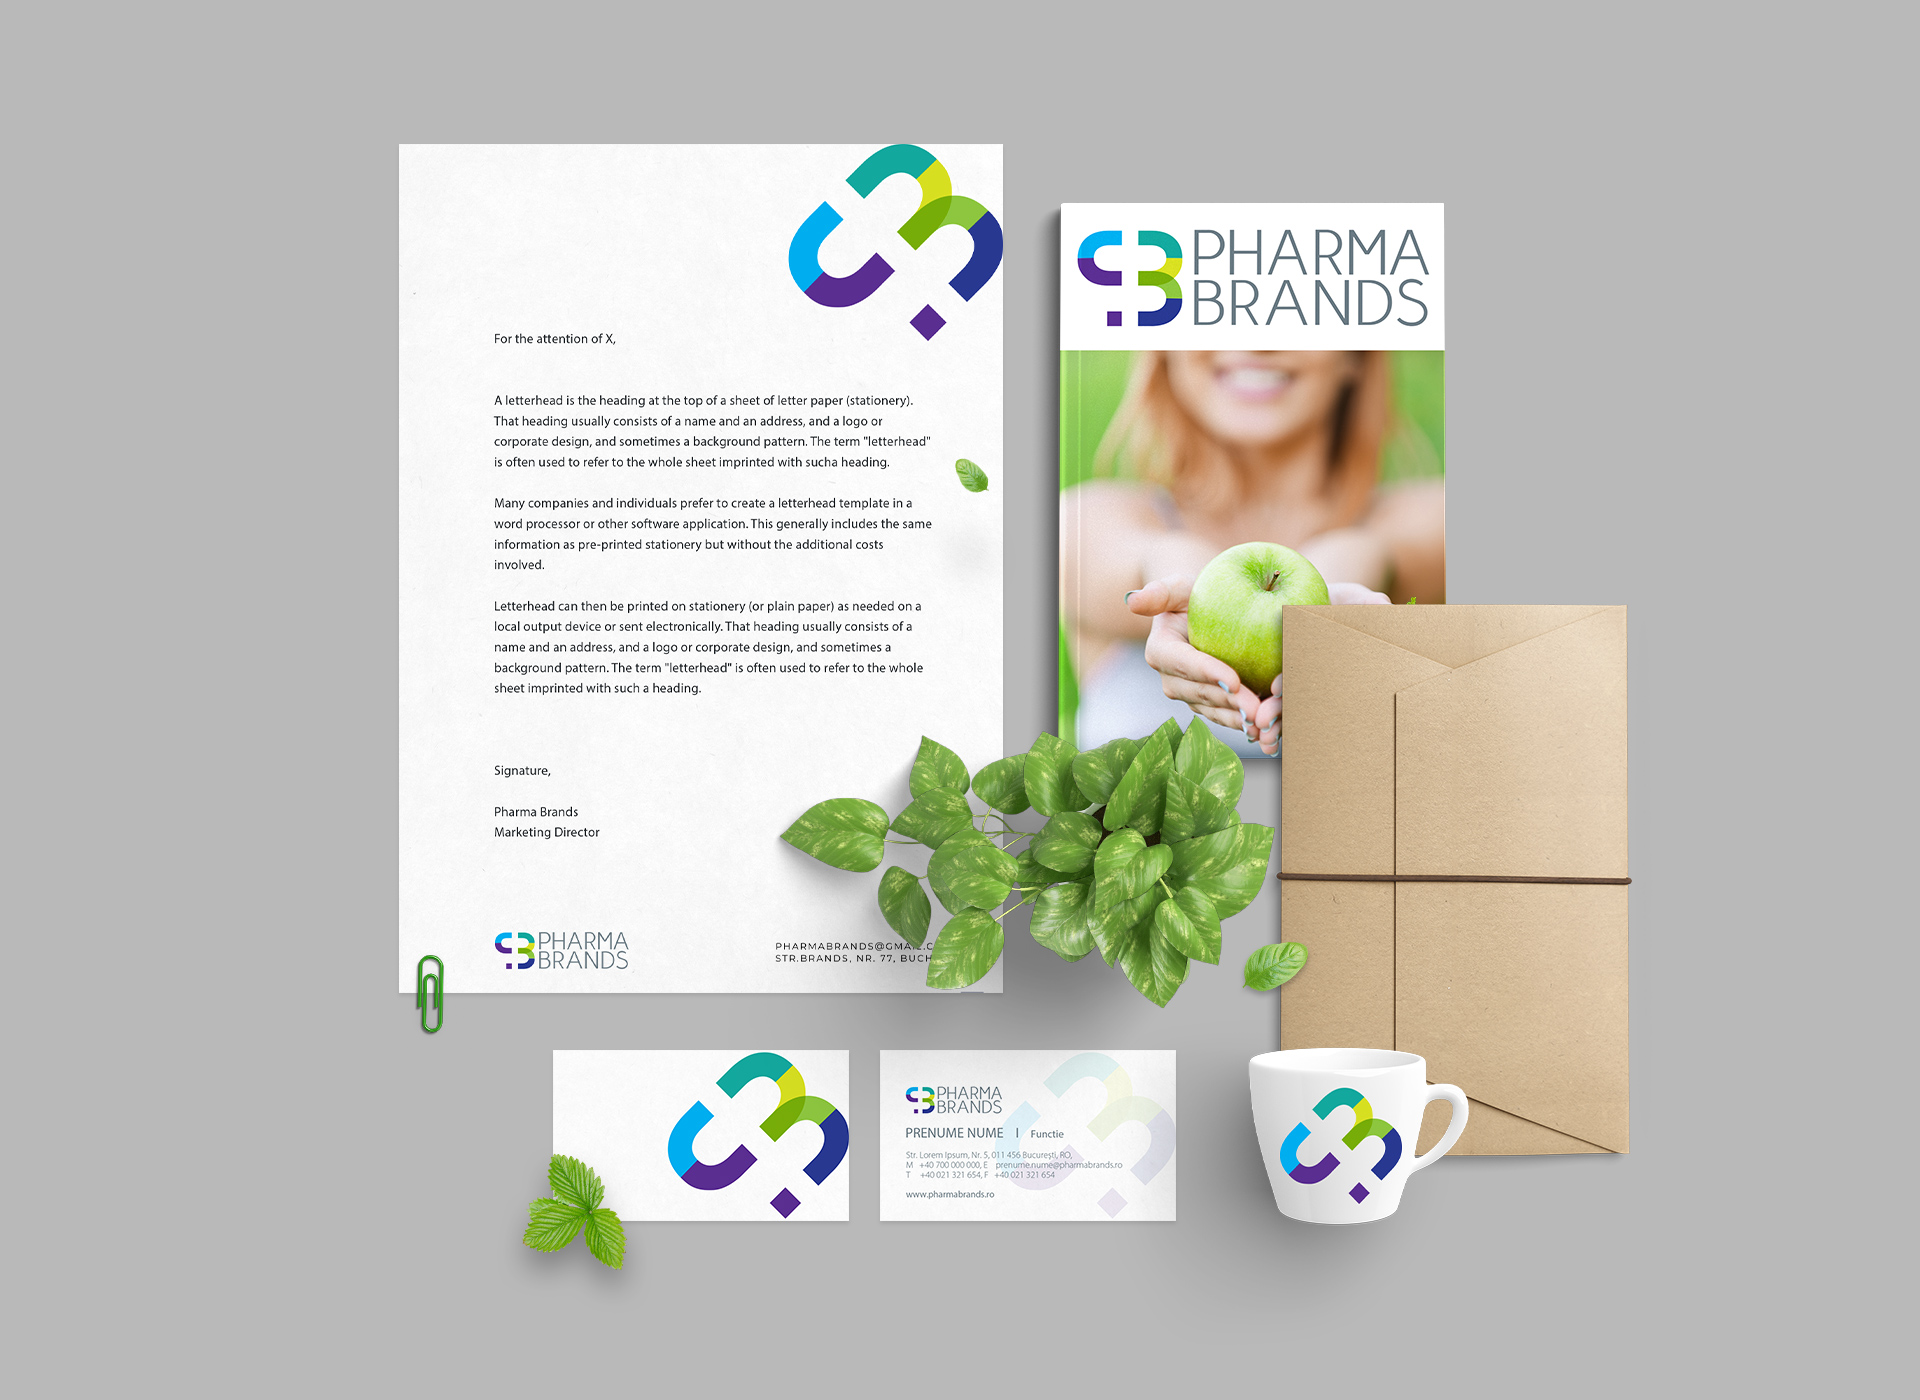 pharma brands stationery portofoliu inoveo